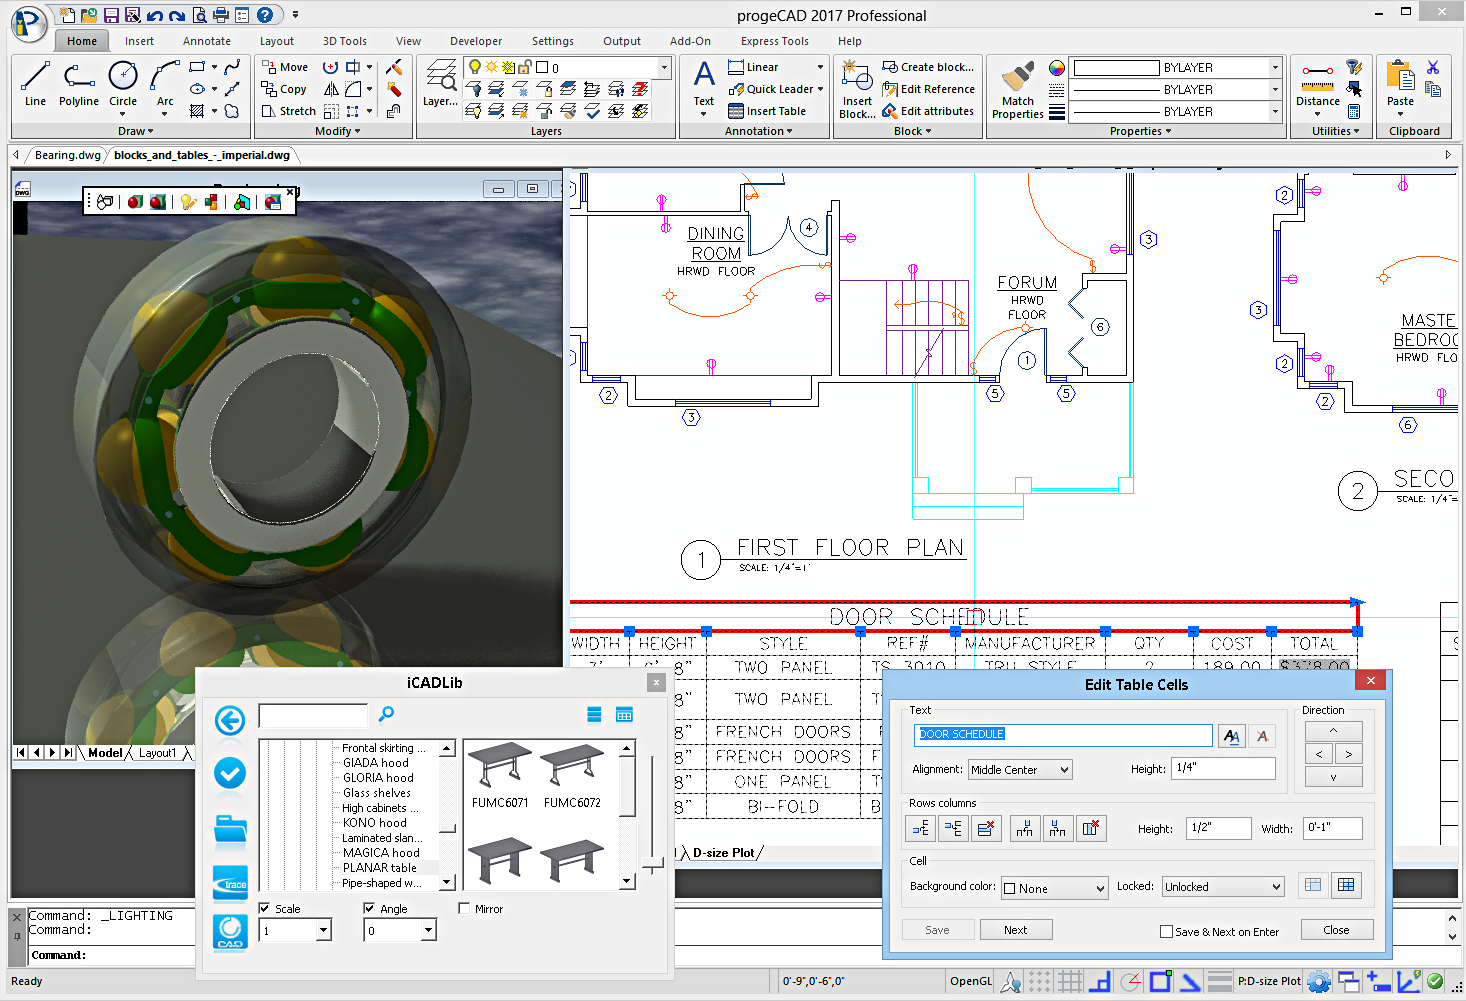 progeCAD 2017 Professional CAD Software 17.0.4.27